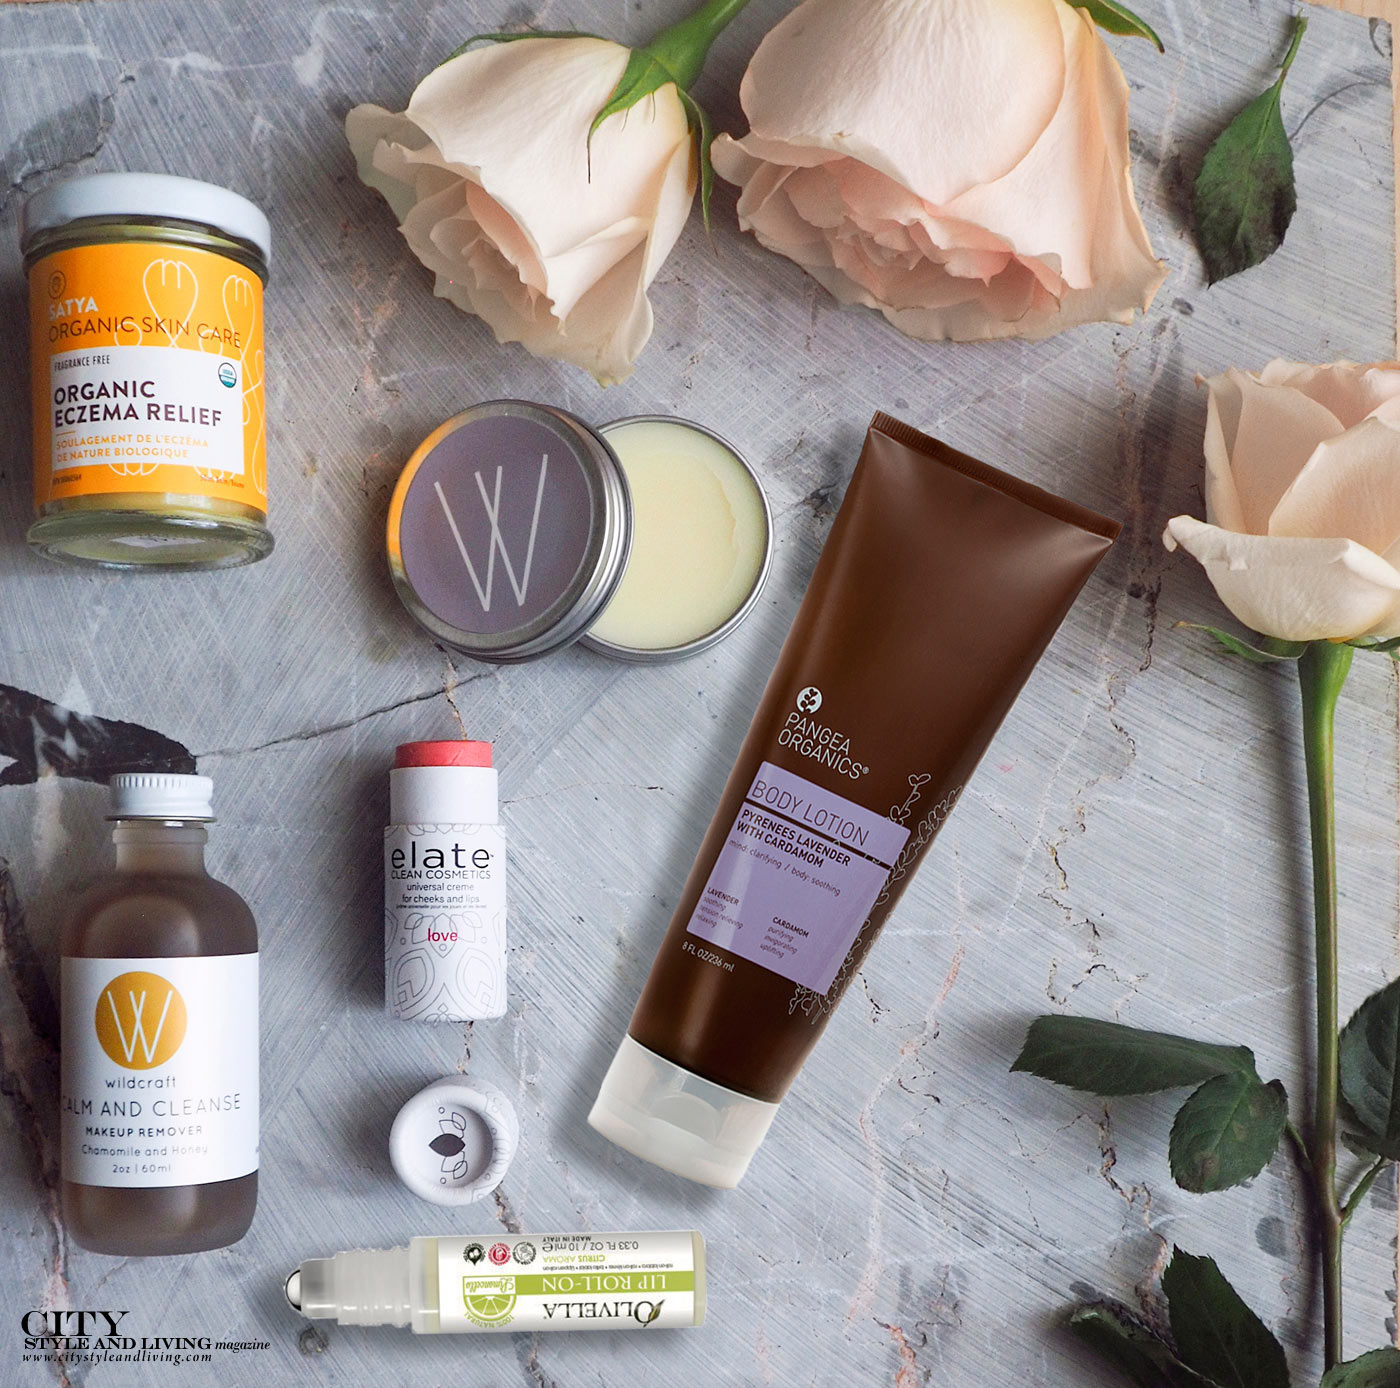 City Style and Living Magazine favourite summer beauty products 2017